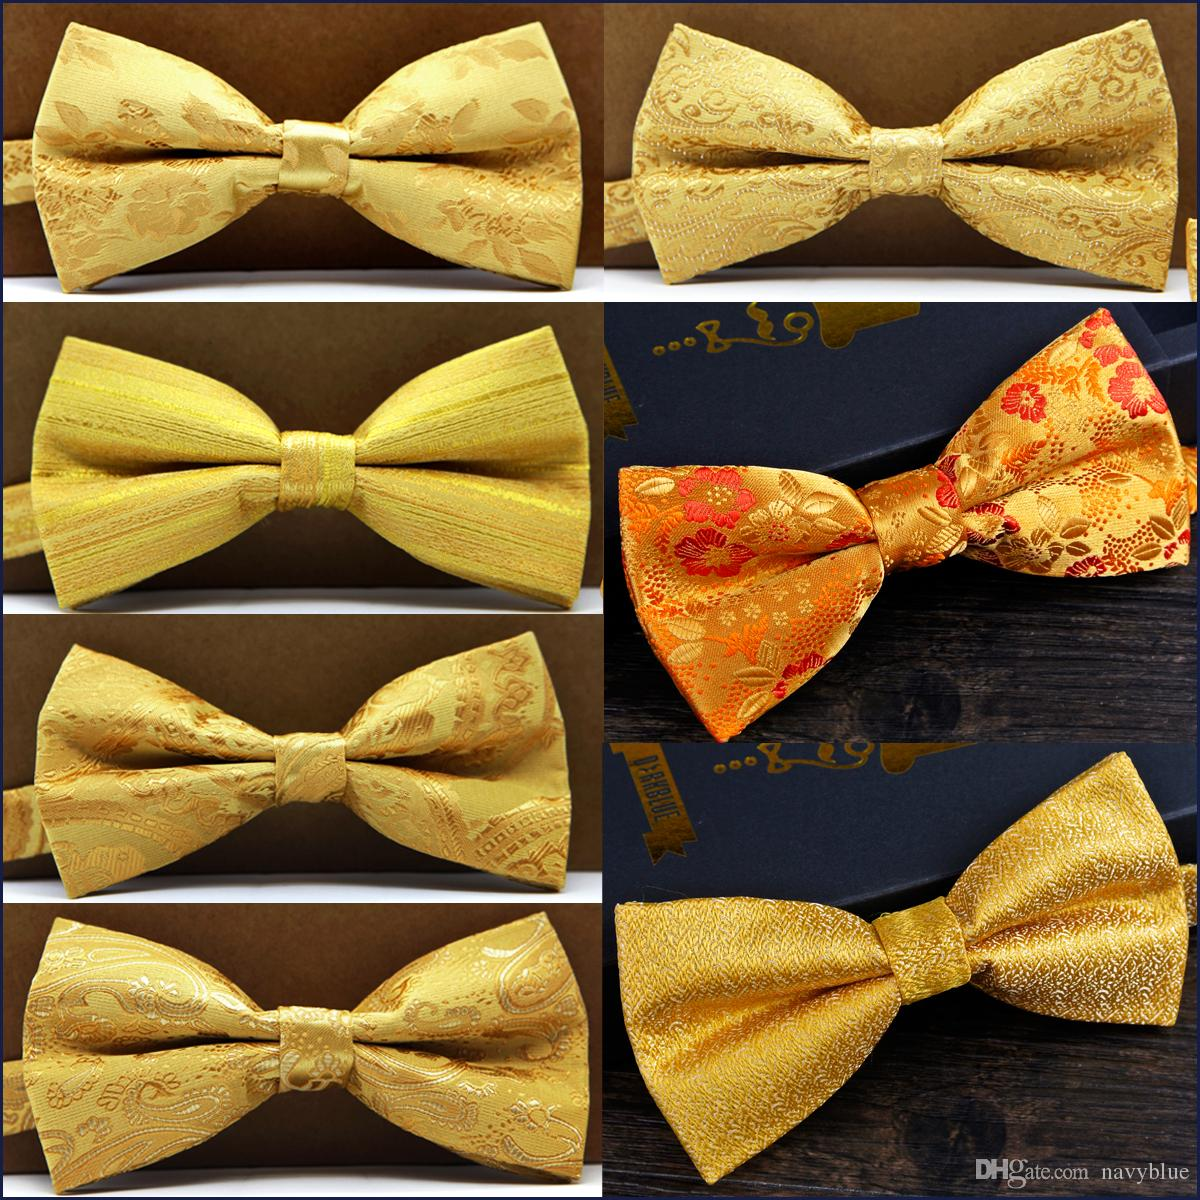 b45ec3a950ec Paisley Floral Solid Stripes Gold Yellow Mens Pre Tied Tuxedo Bow Tie 100%  Silk Adjustable Wholesale Handmade Brand New Green Tie Dog Bow Tie From  Navyblue, ...